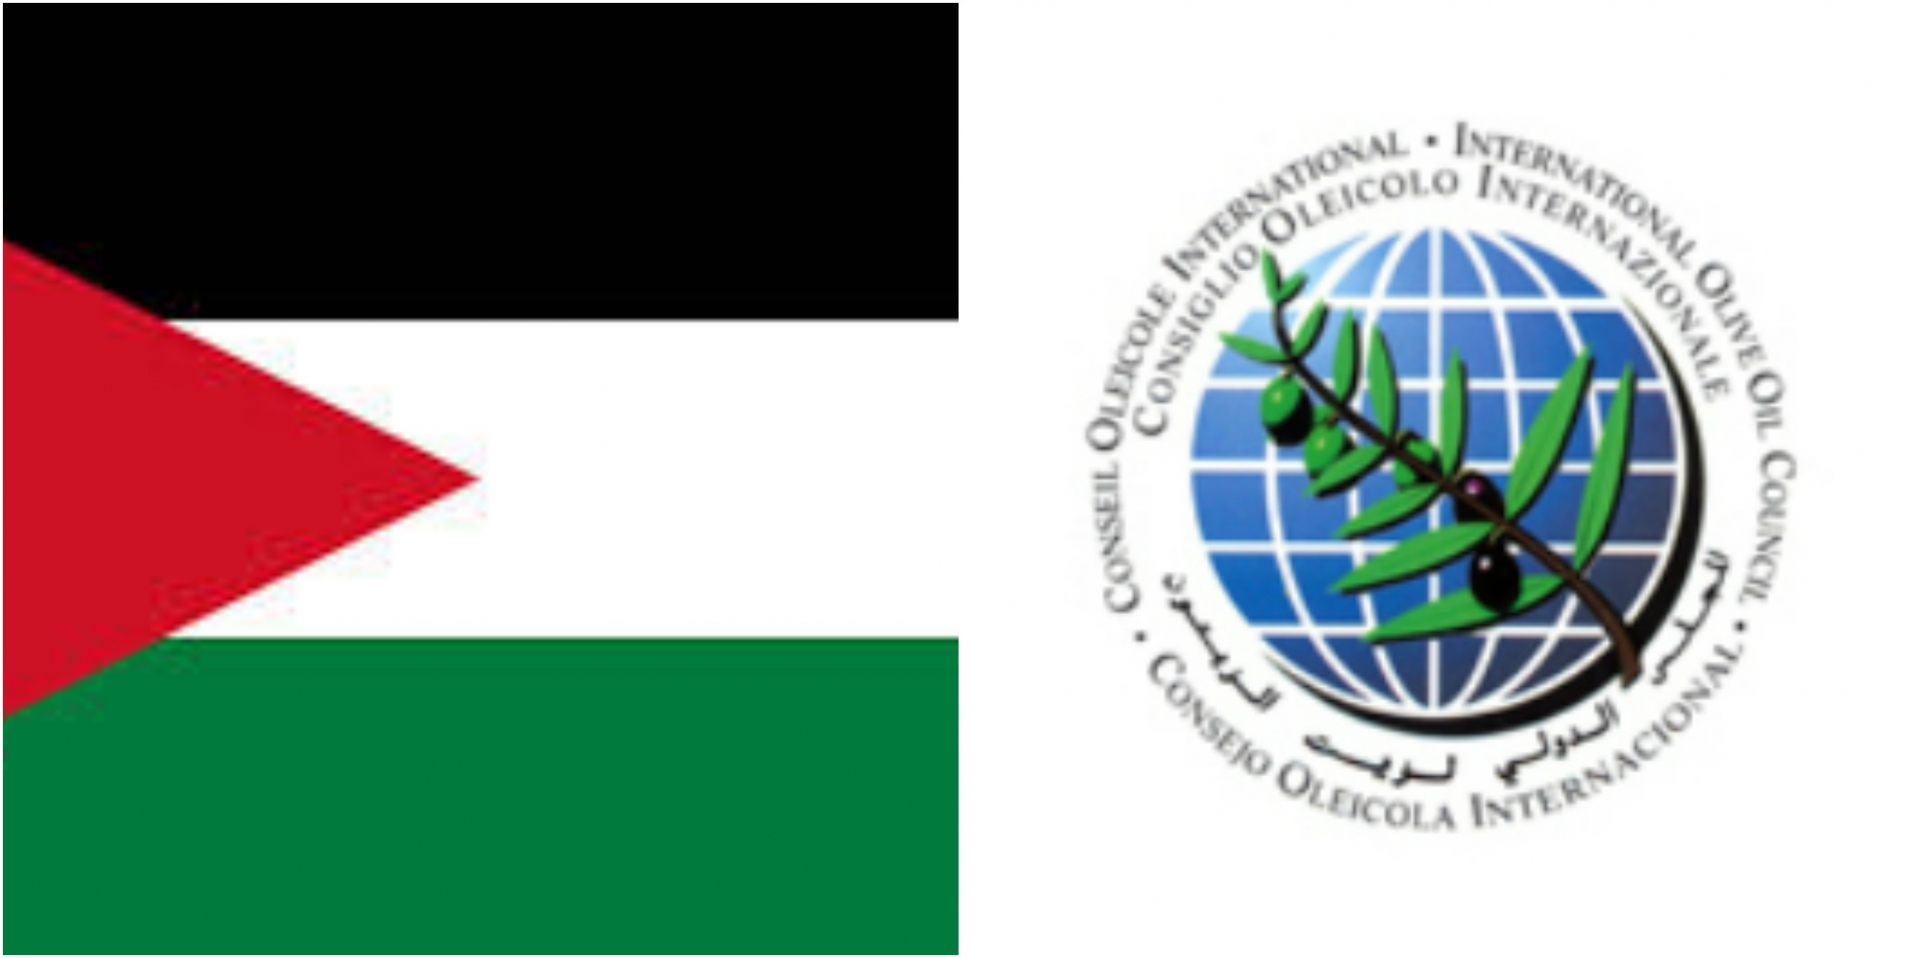 Jordan ratifies its accession to the International Olive Council